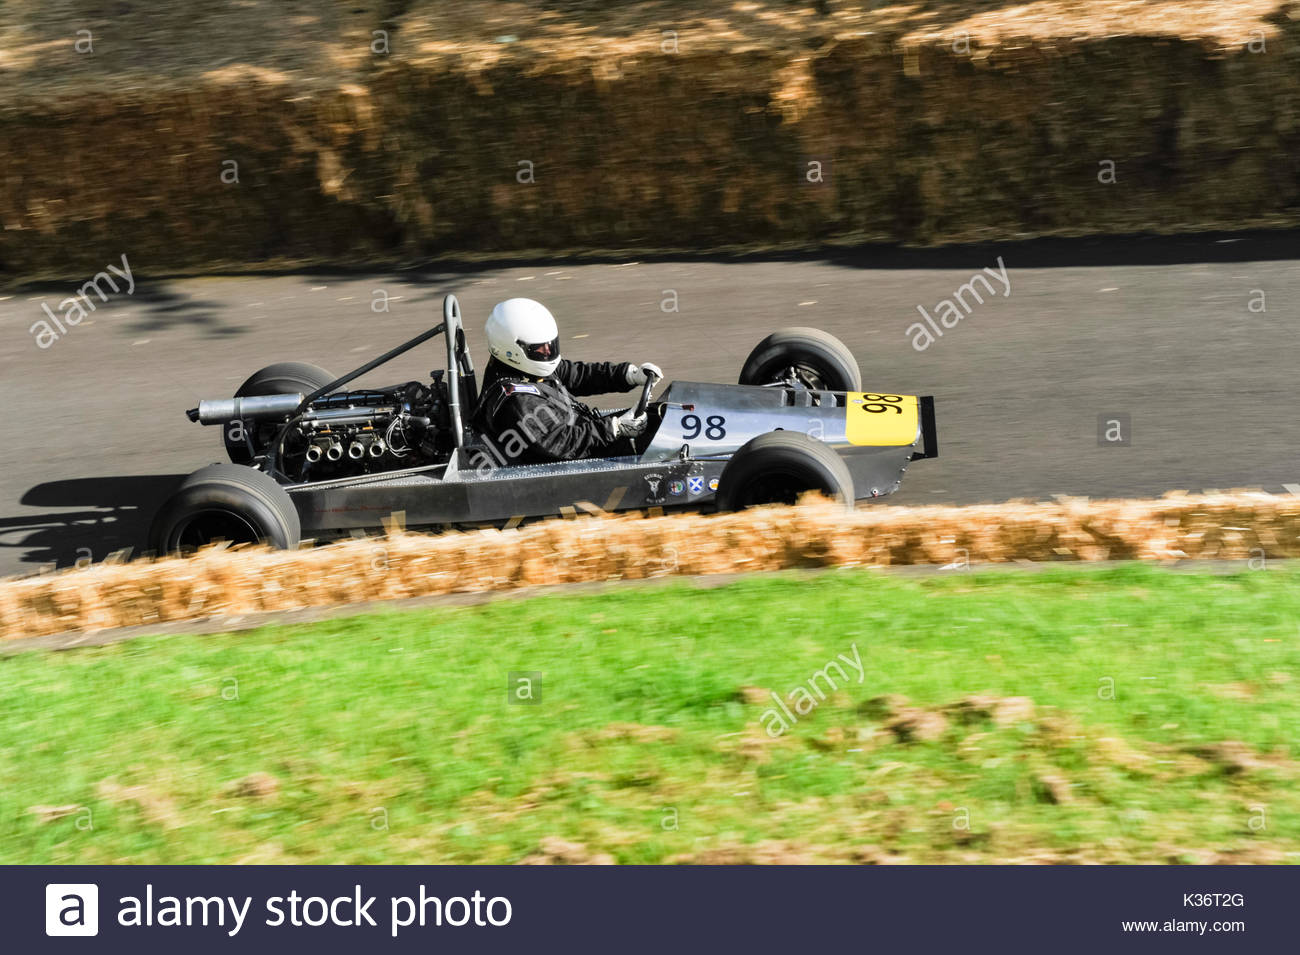 Bo'ness, UK. 2 September, 2017.   William Millard in the Fisher Monocoque during the Bo'ness Speed Hill Climb.   Classic cars from before WW1 up to 1973  competed in the 10th Revival Meeting. Credit: Roger Gaisford/Alamy Live News. - Stock Image